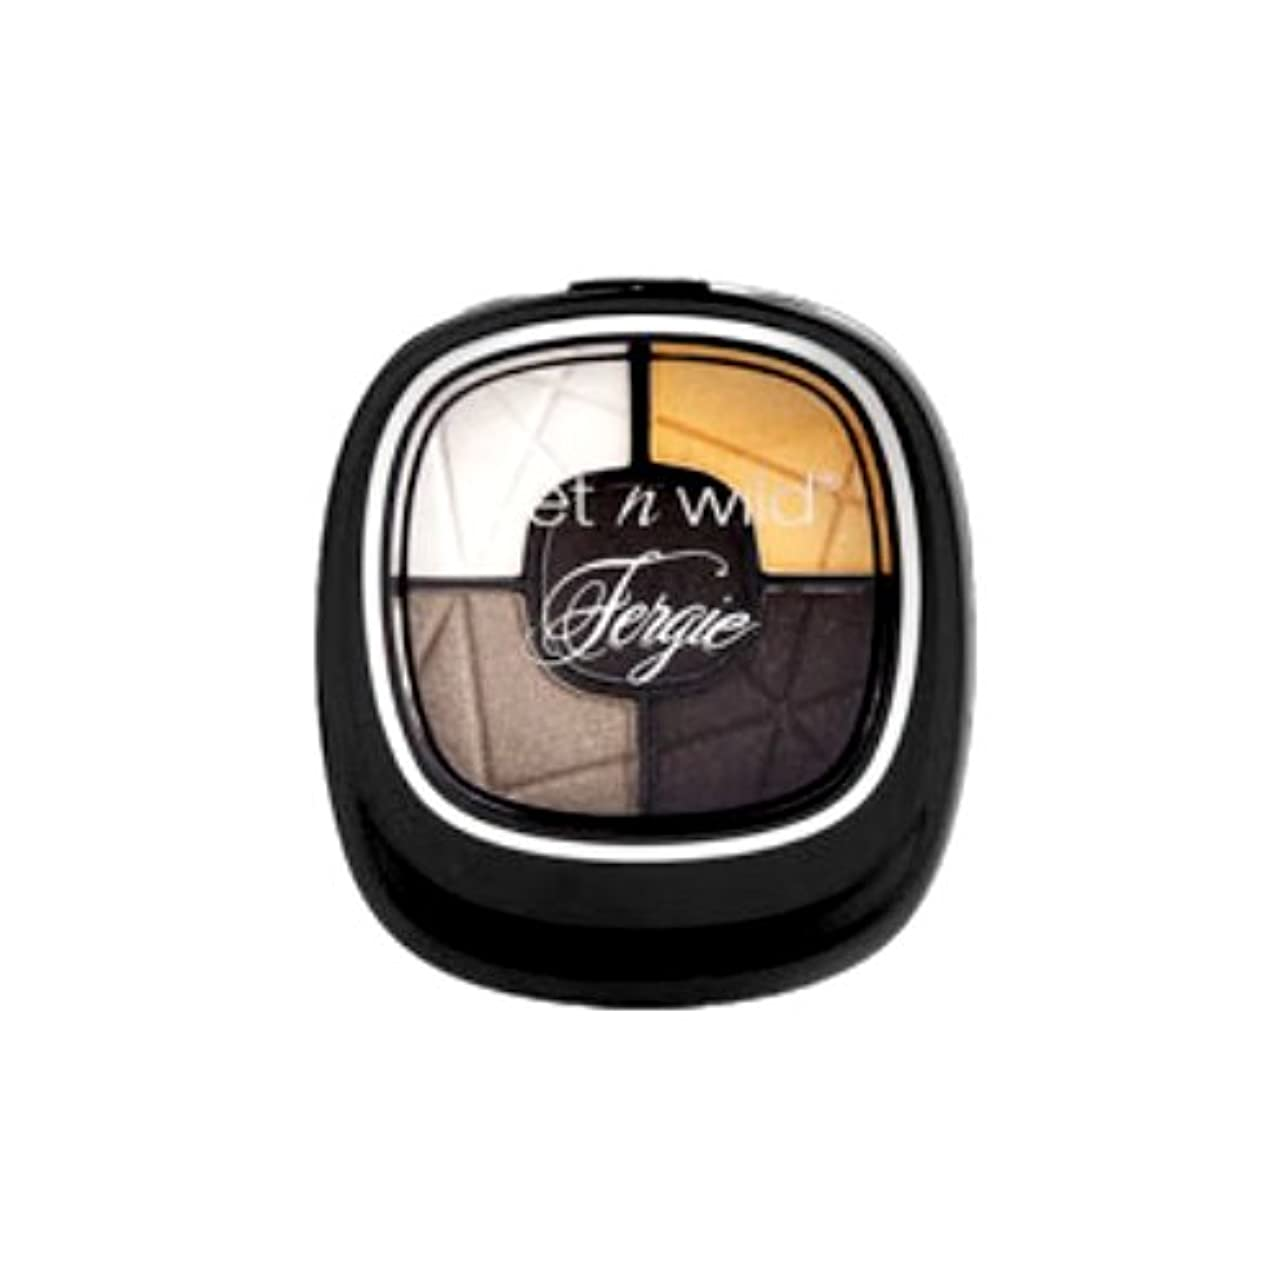 入る体細胞定義するWet N Wild FERGIE Photo Op Eyeshadow - Metropolitan Lights (並行輸入品)